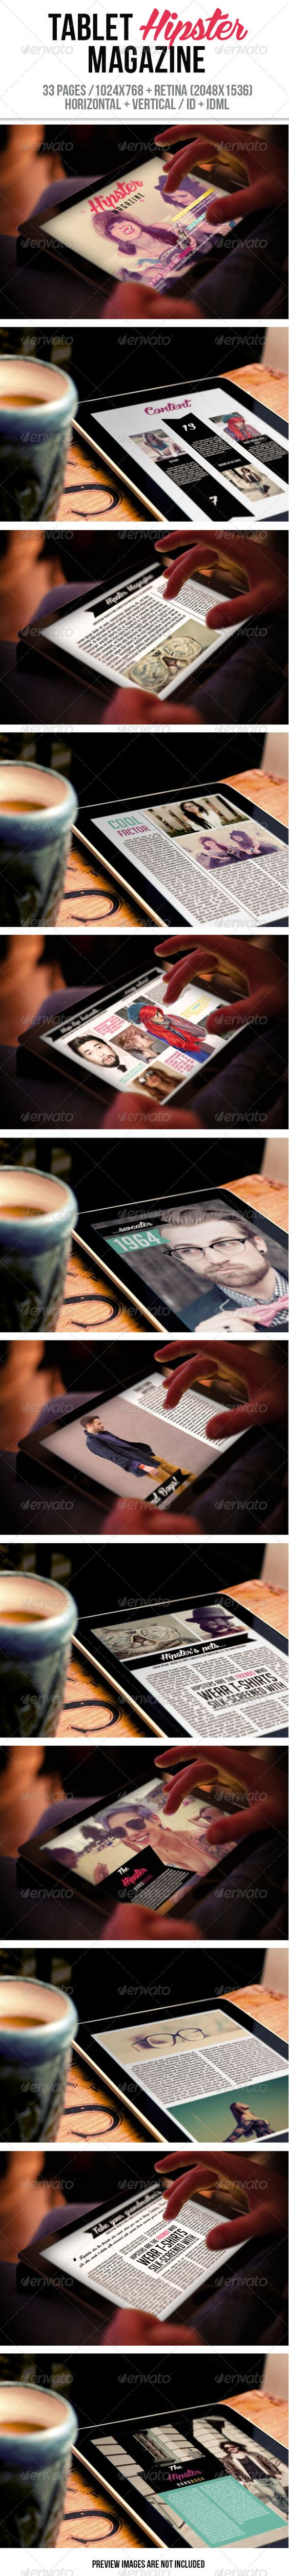 iPad & Tablet Hipster Magazine  Template #design Download: http://graphicriver.net/item/ipad-tablet-hipster-magazine/6278015?ref=ksioks